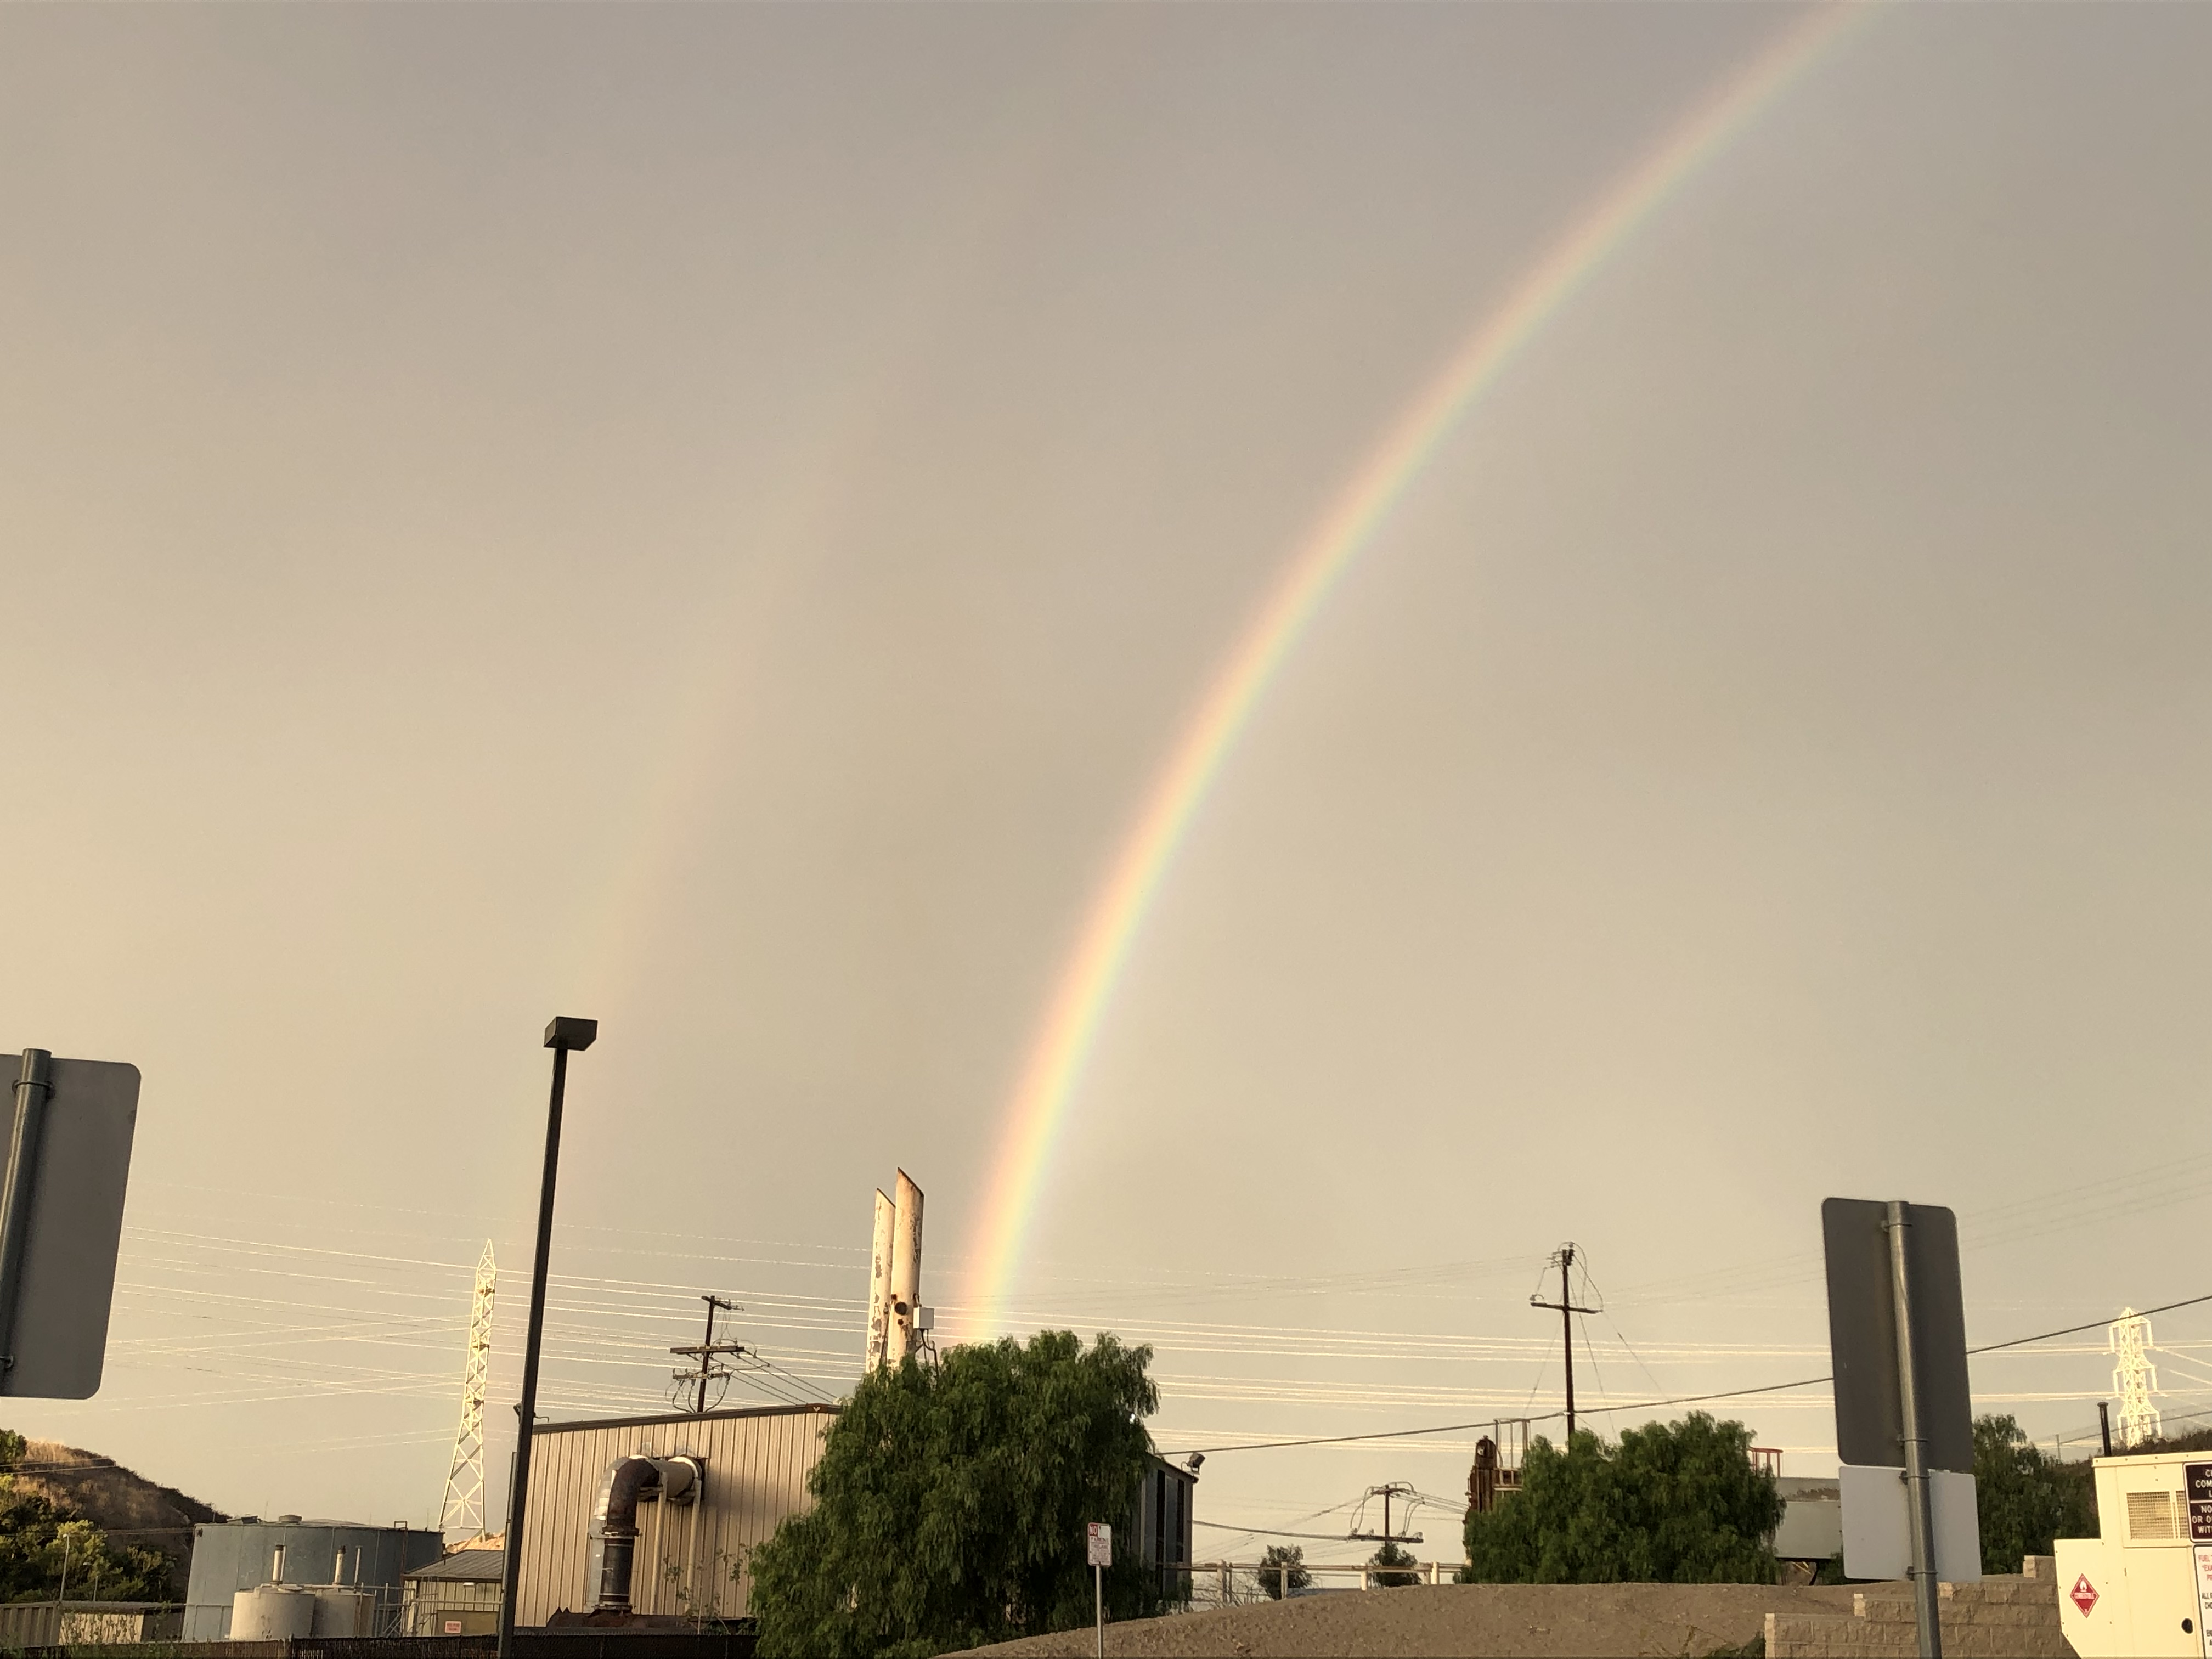 rainbow ends at the powerplant